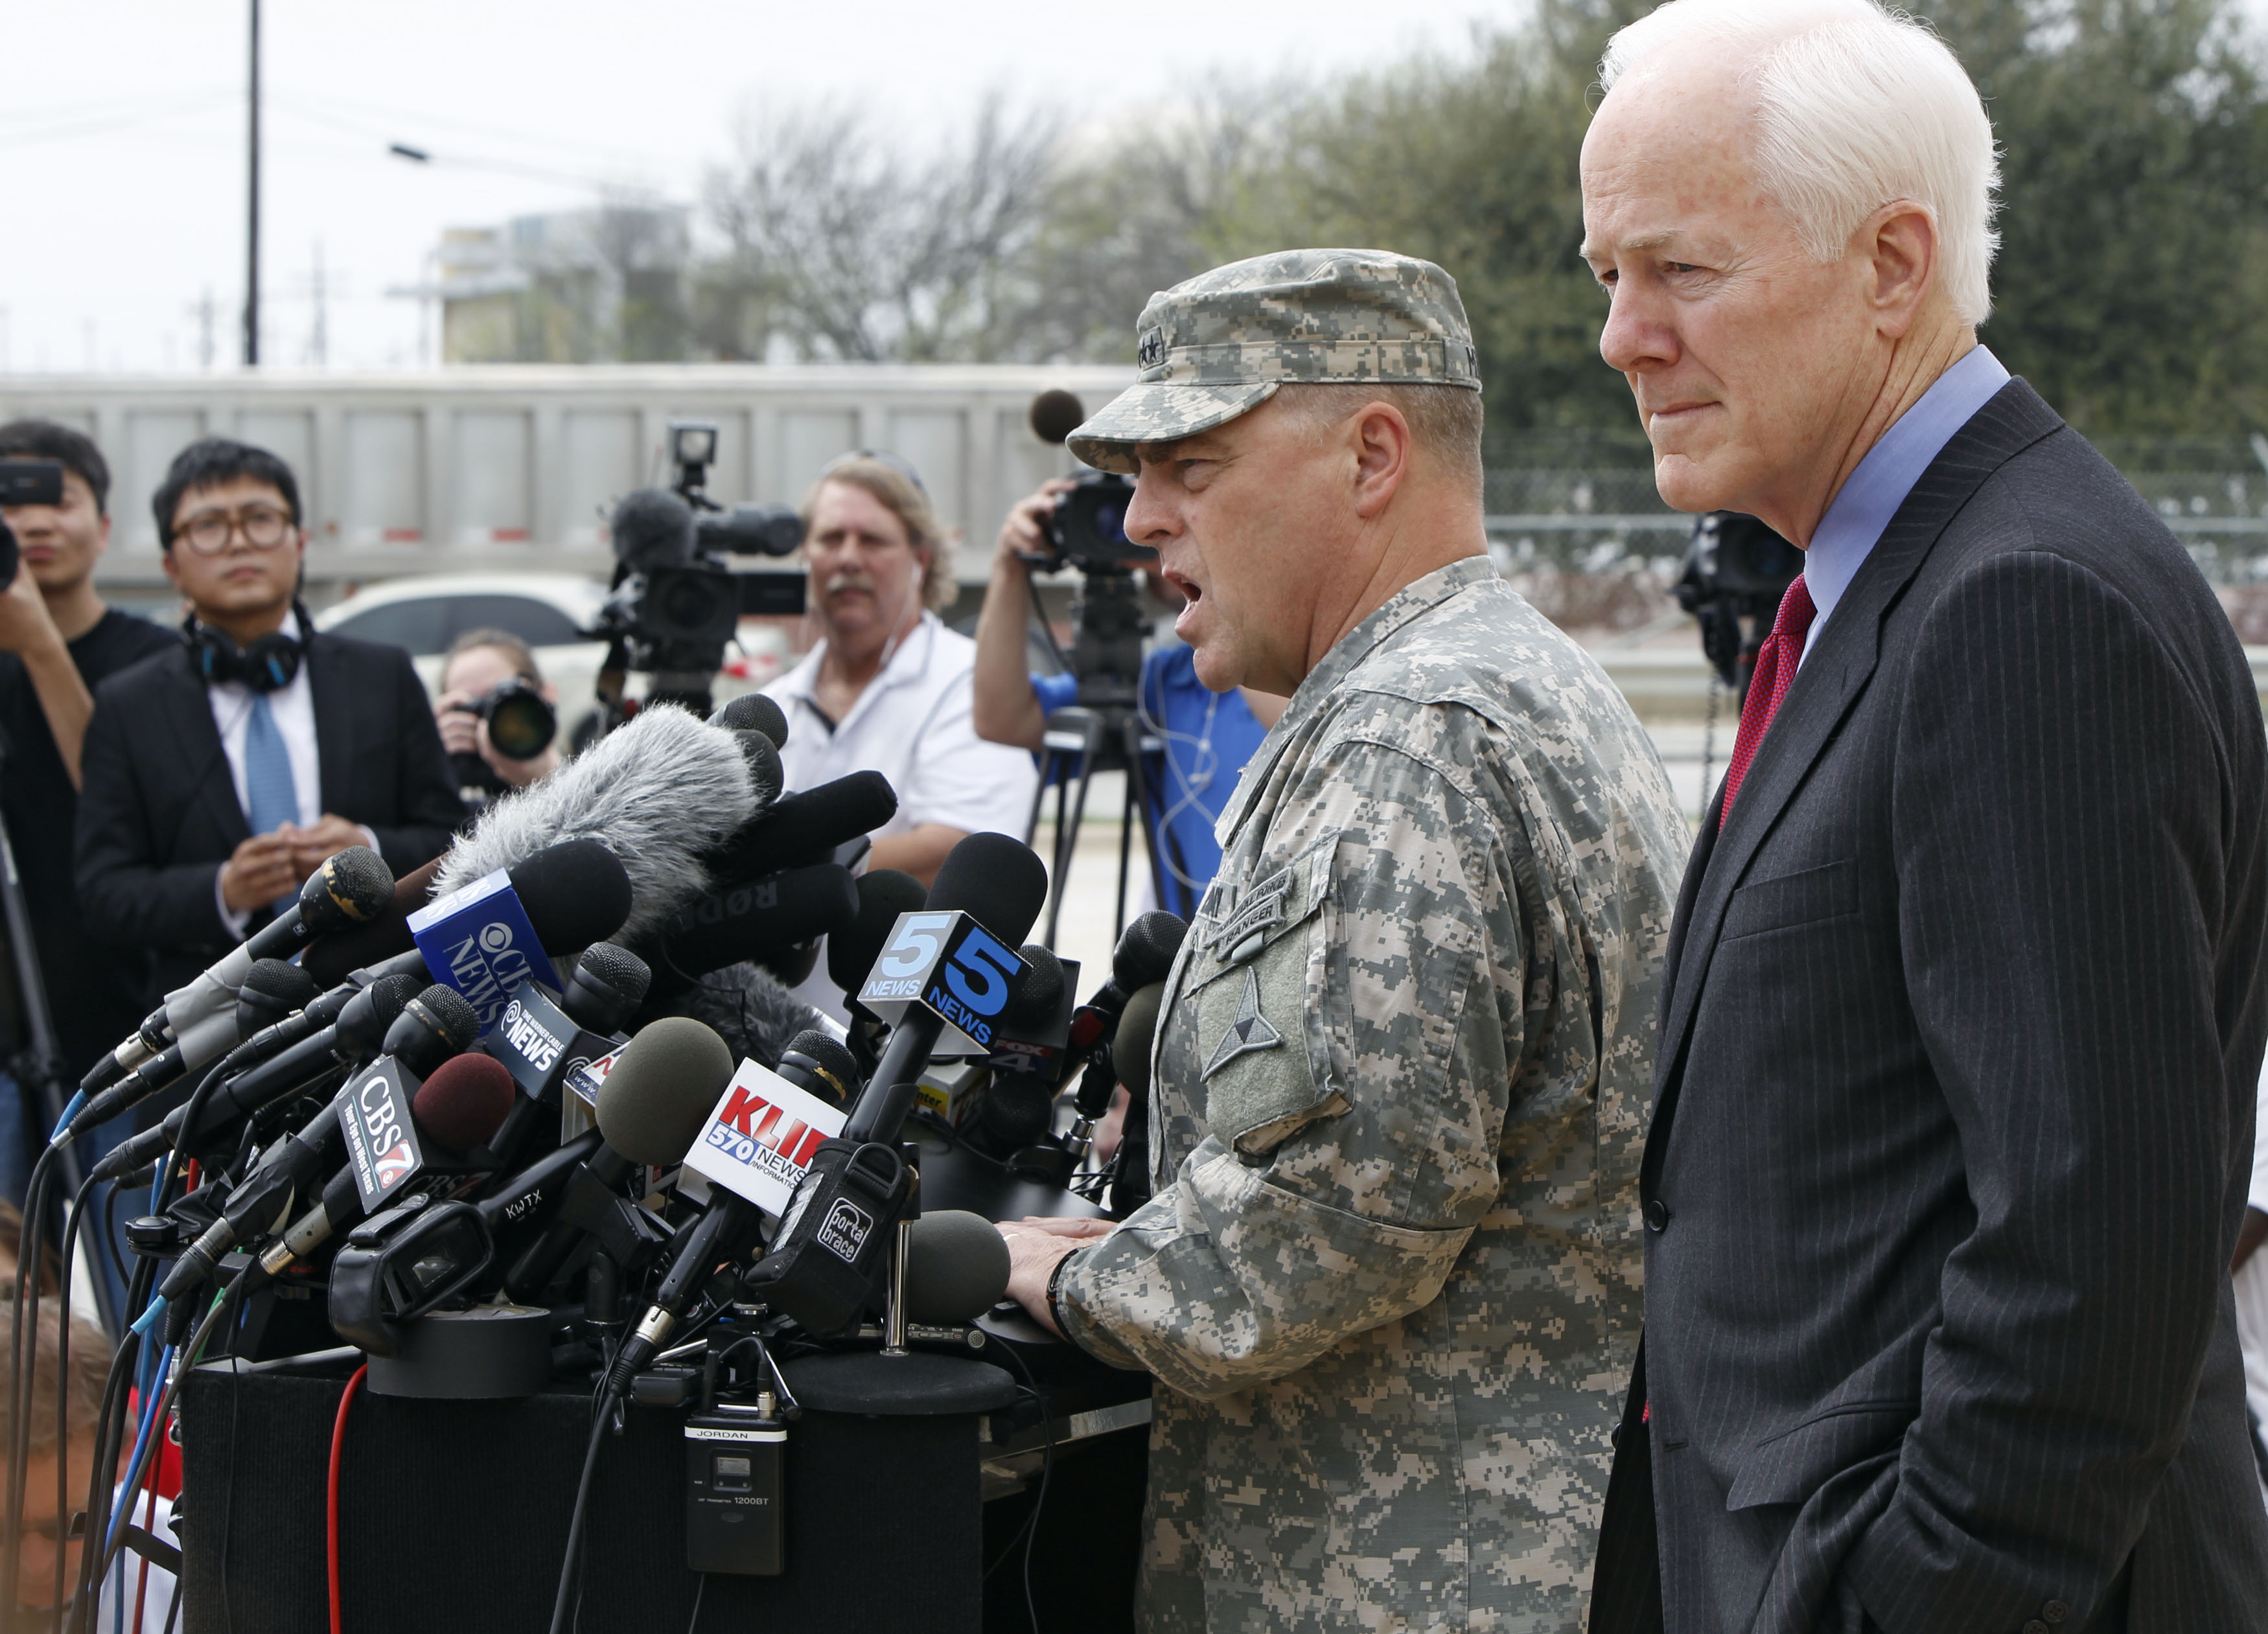 Signs of argument before US base shooting: commander